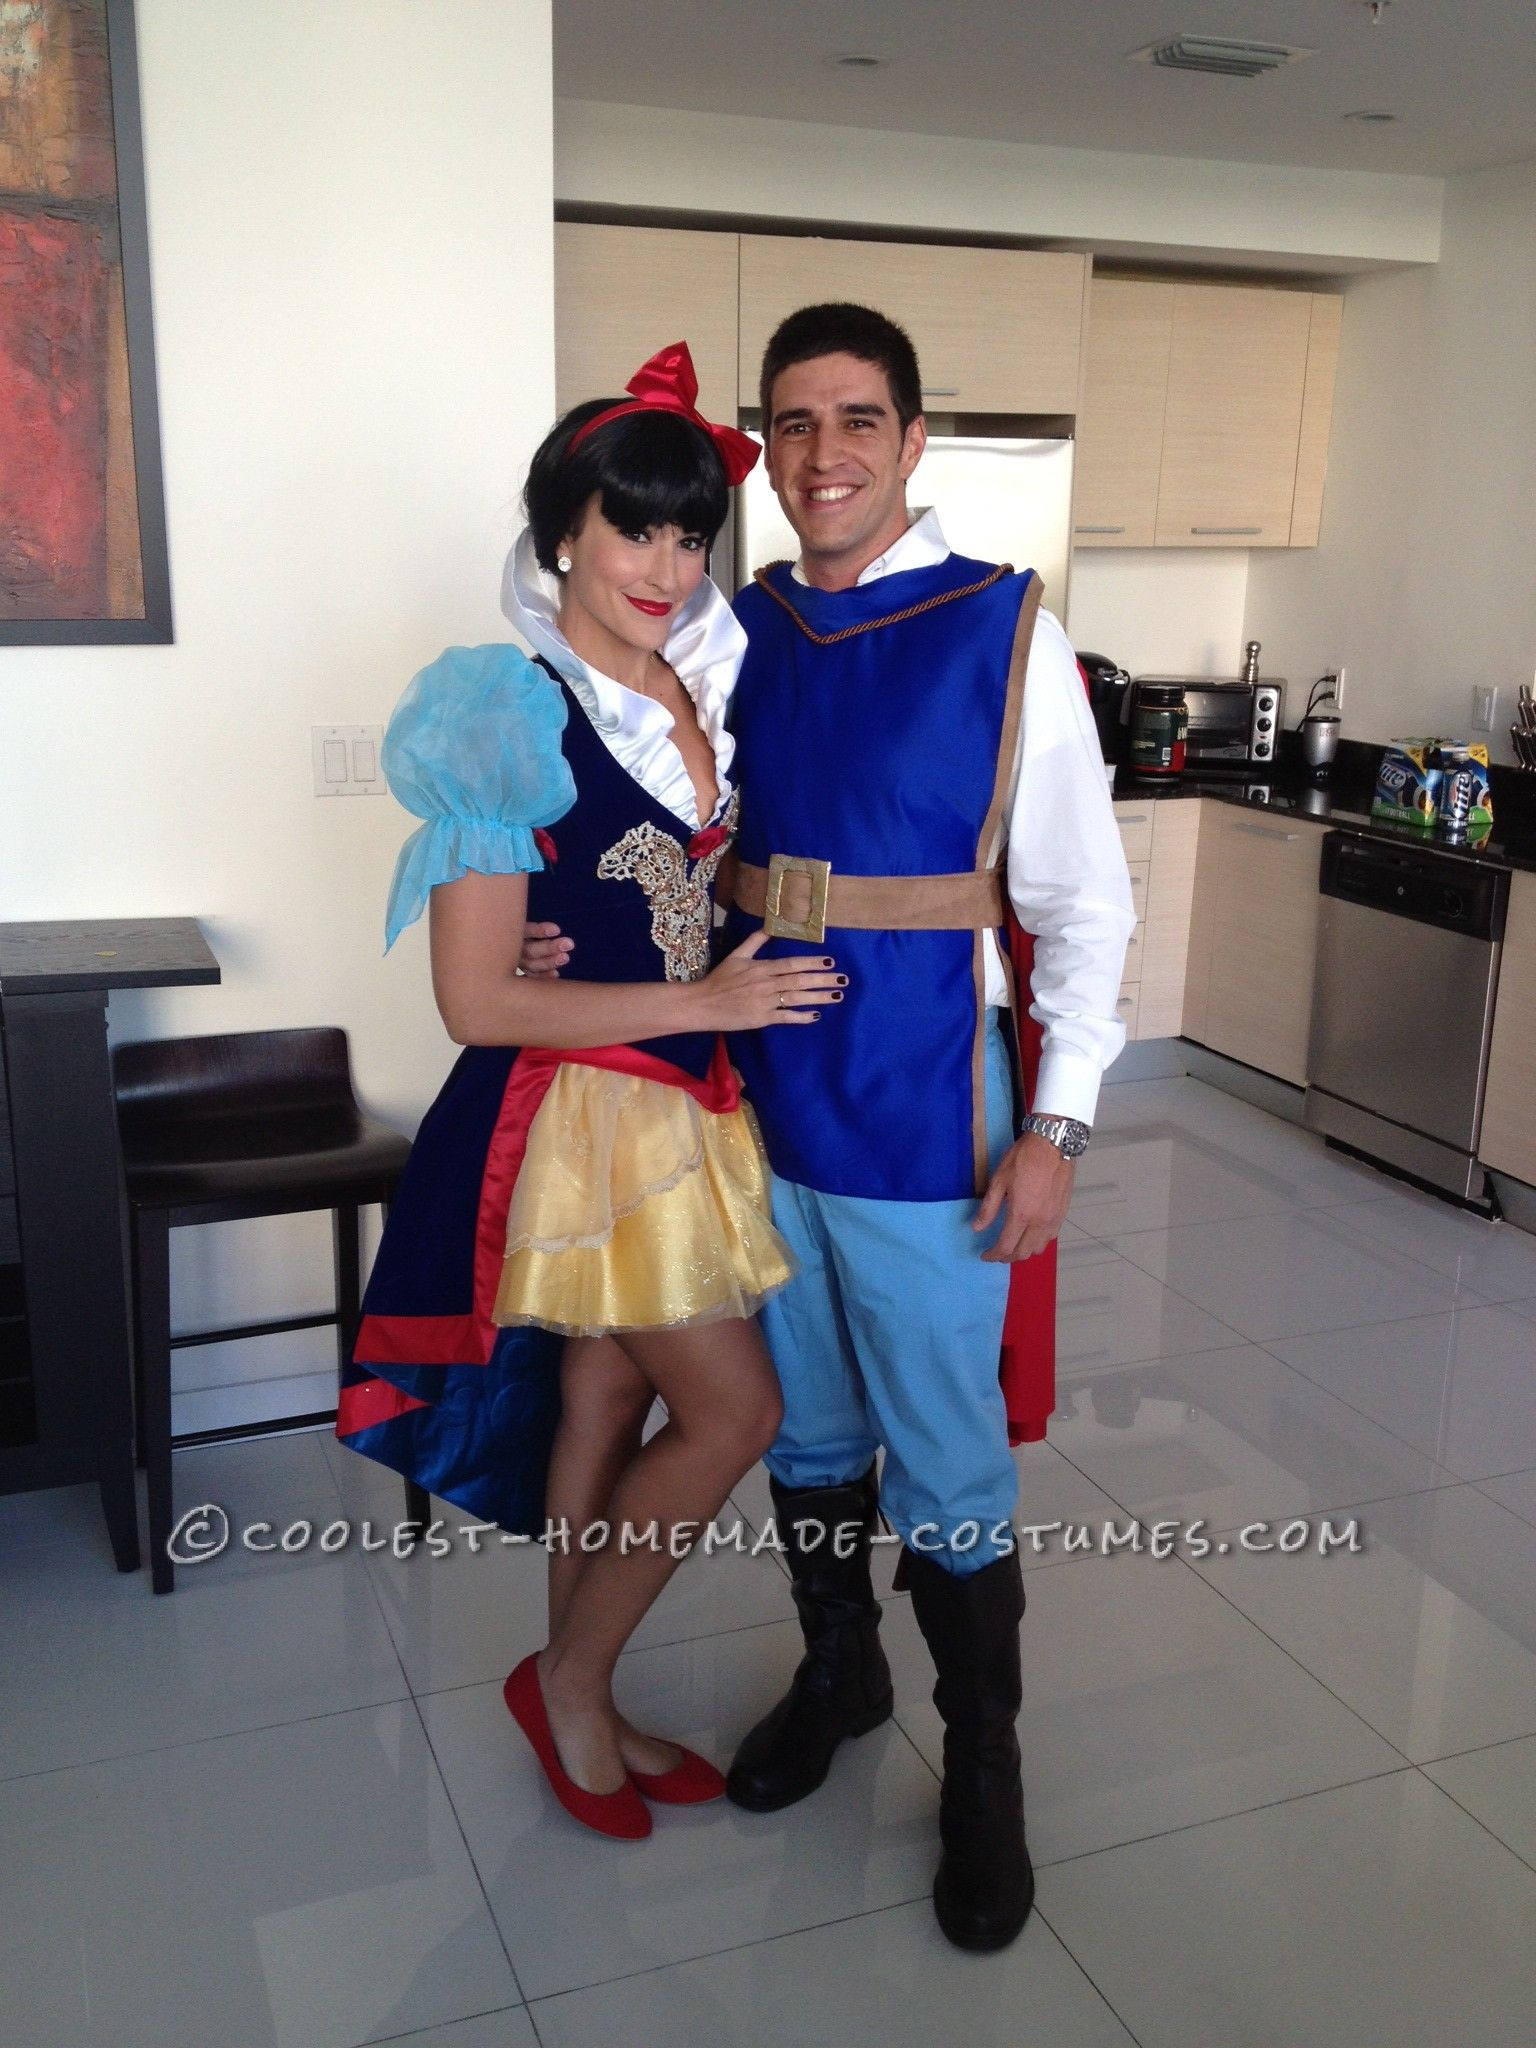 Prince Charming 100 Homemade Costume And Snow White